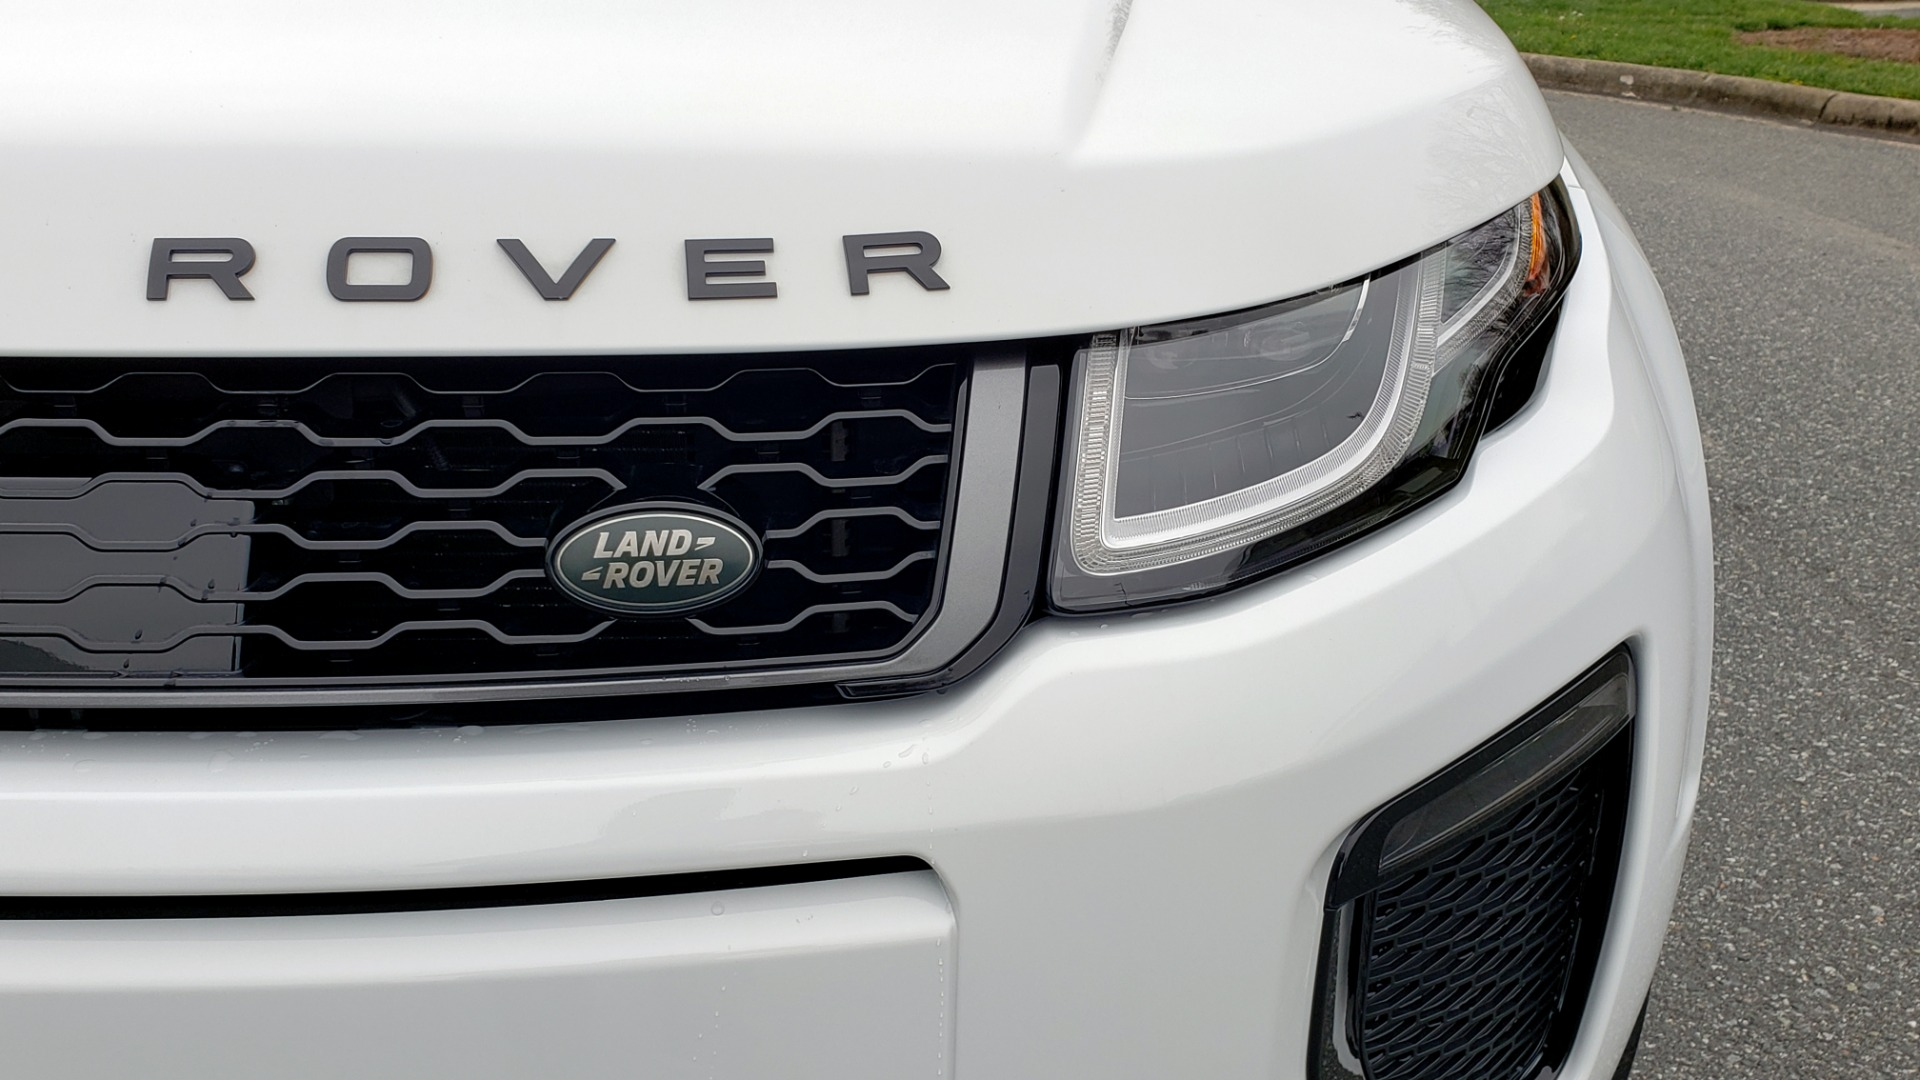 Used 2016 Land Rover RANGE ROVER EVOQUE HSE DYNAMIC / AWD / NAV / PANO-ROOF / REARVIEW / 22-IN WHEELS for sale Sold at Formula Imports in Charlotte NC 28227 25